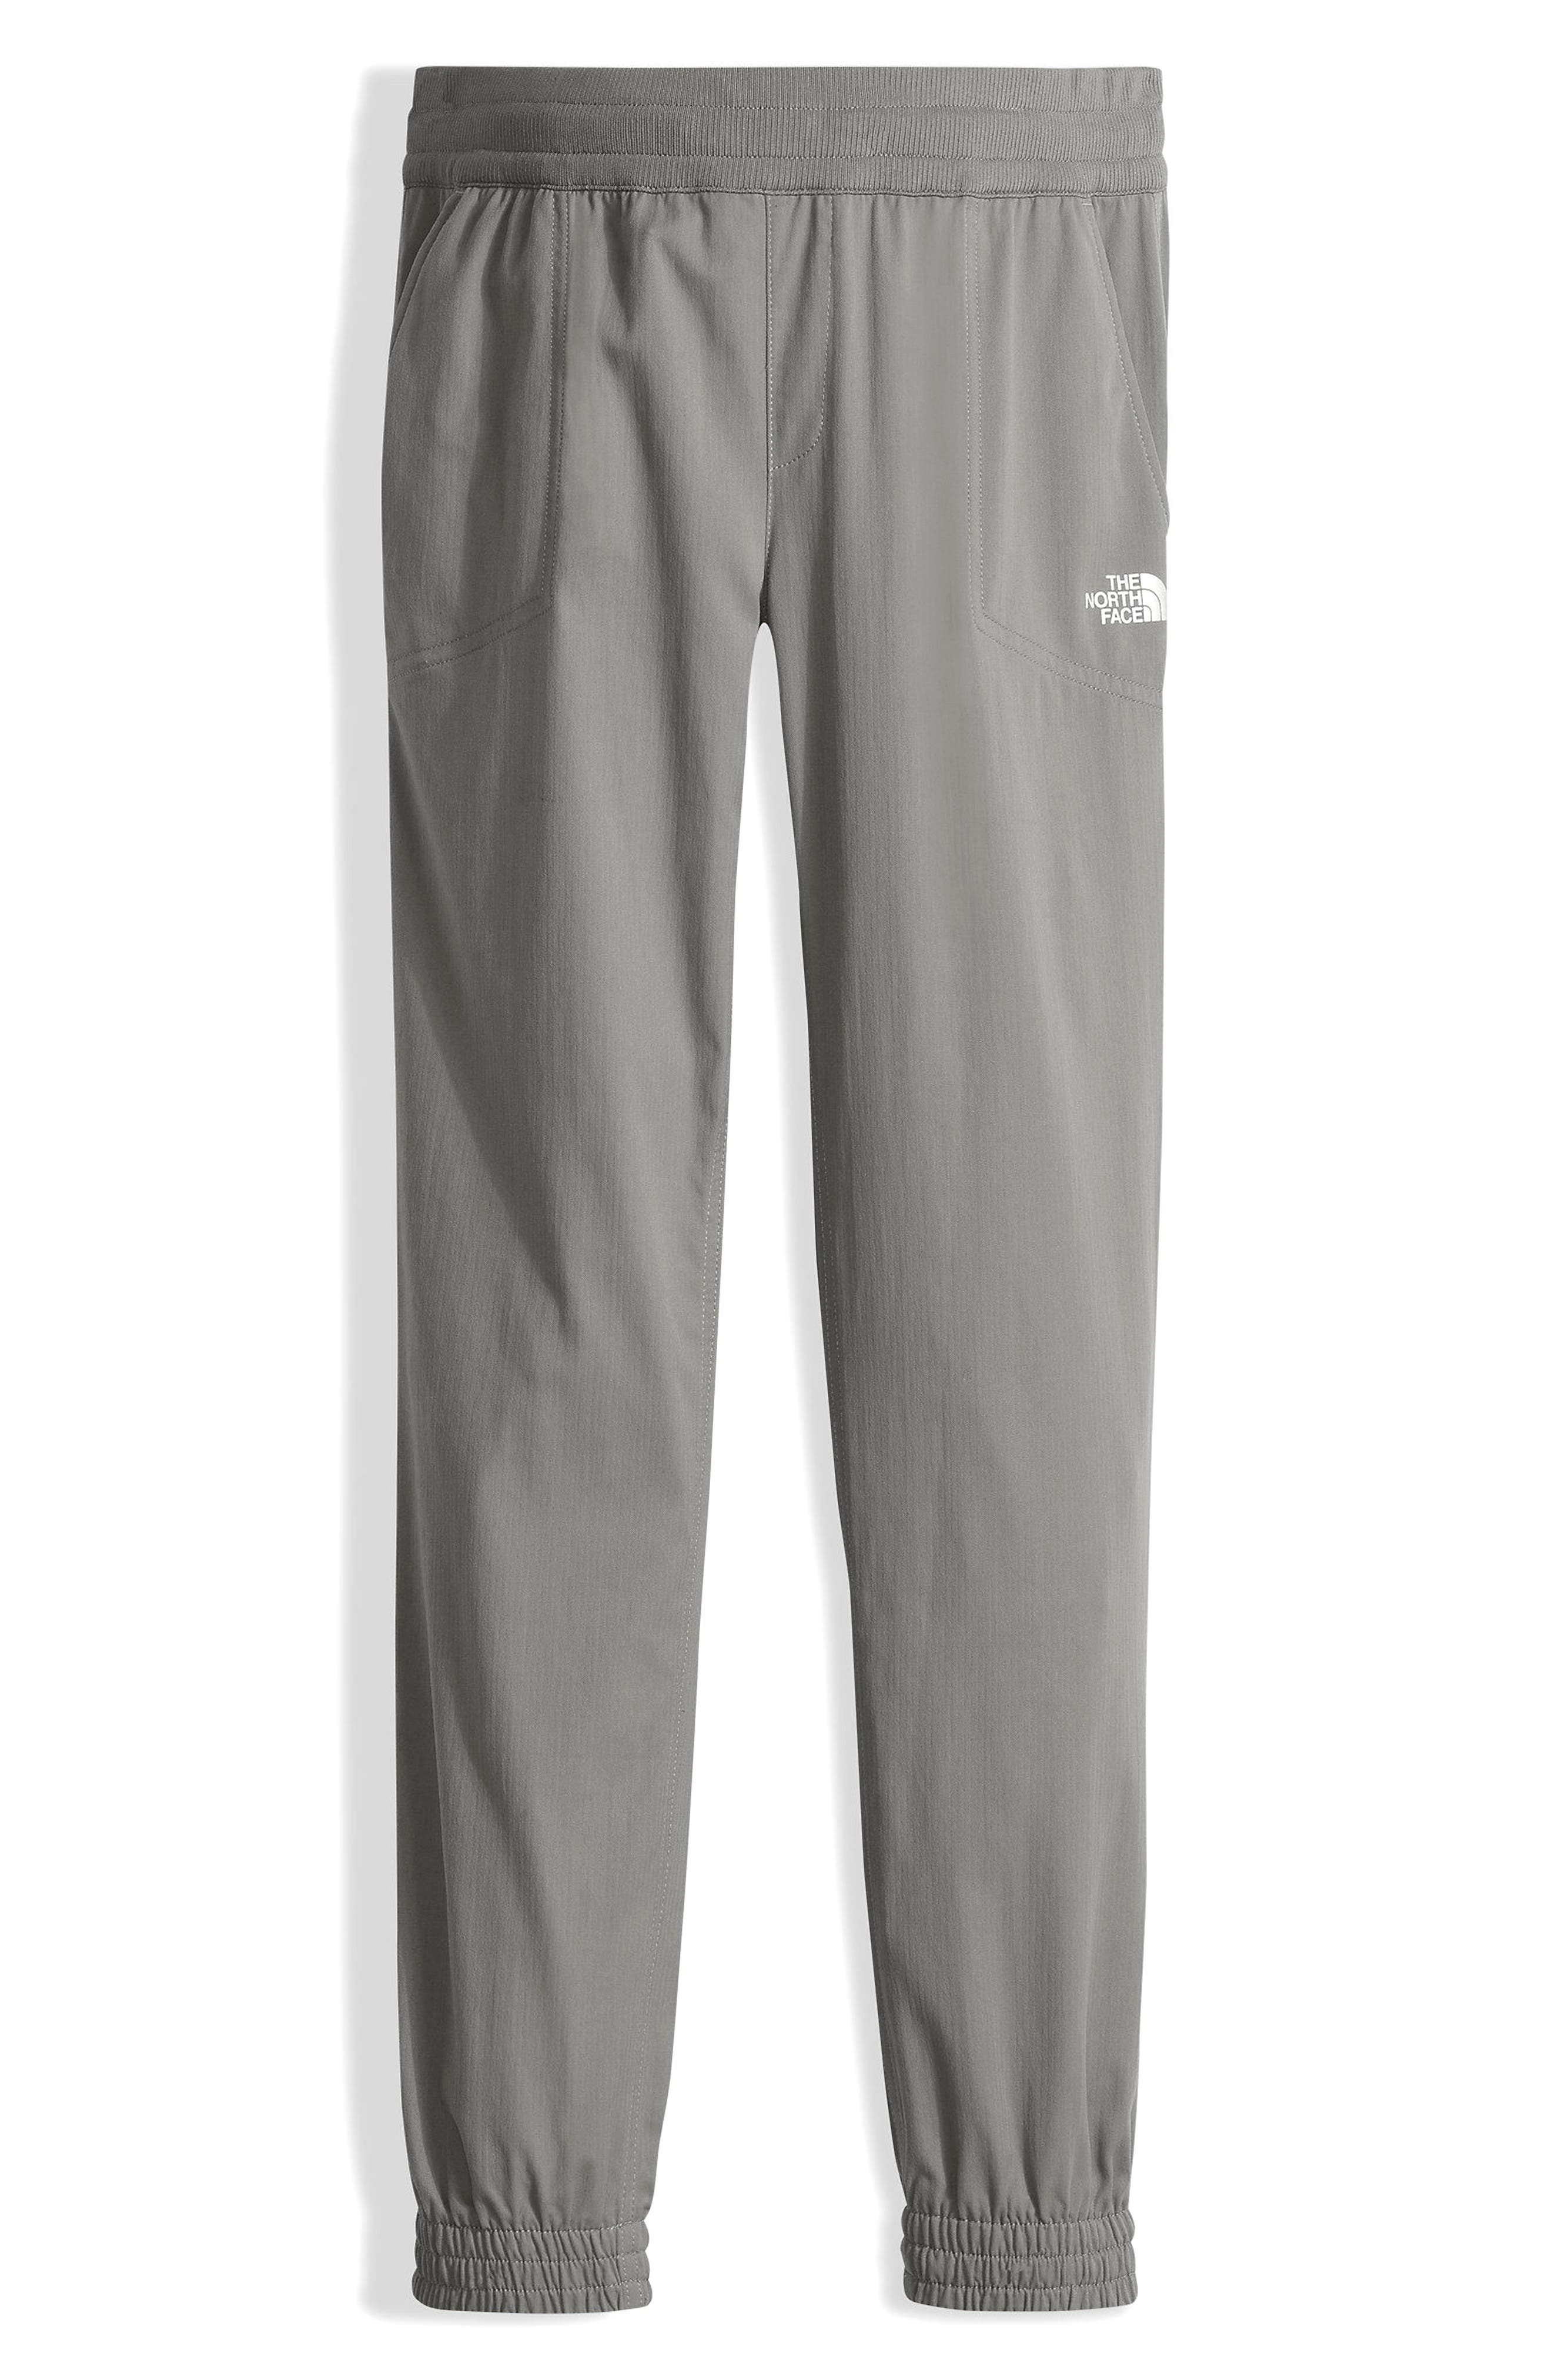 Alternate Image 1 Selected - The North Face Aphrodite Pants (Big Girls)